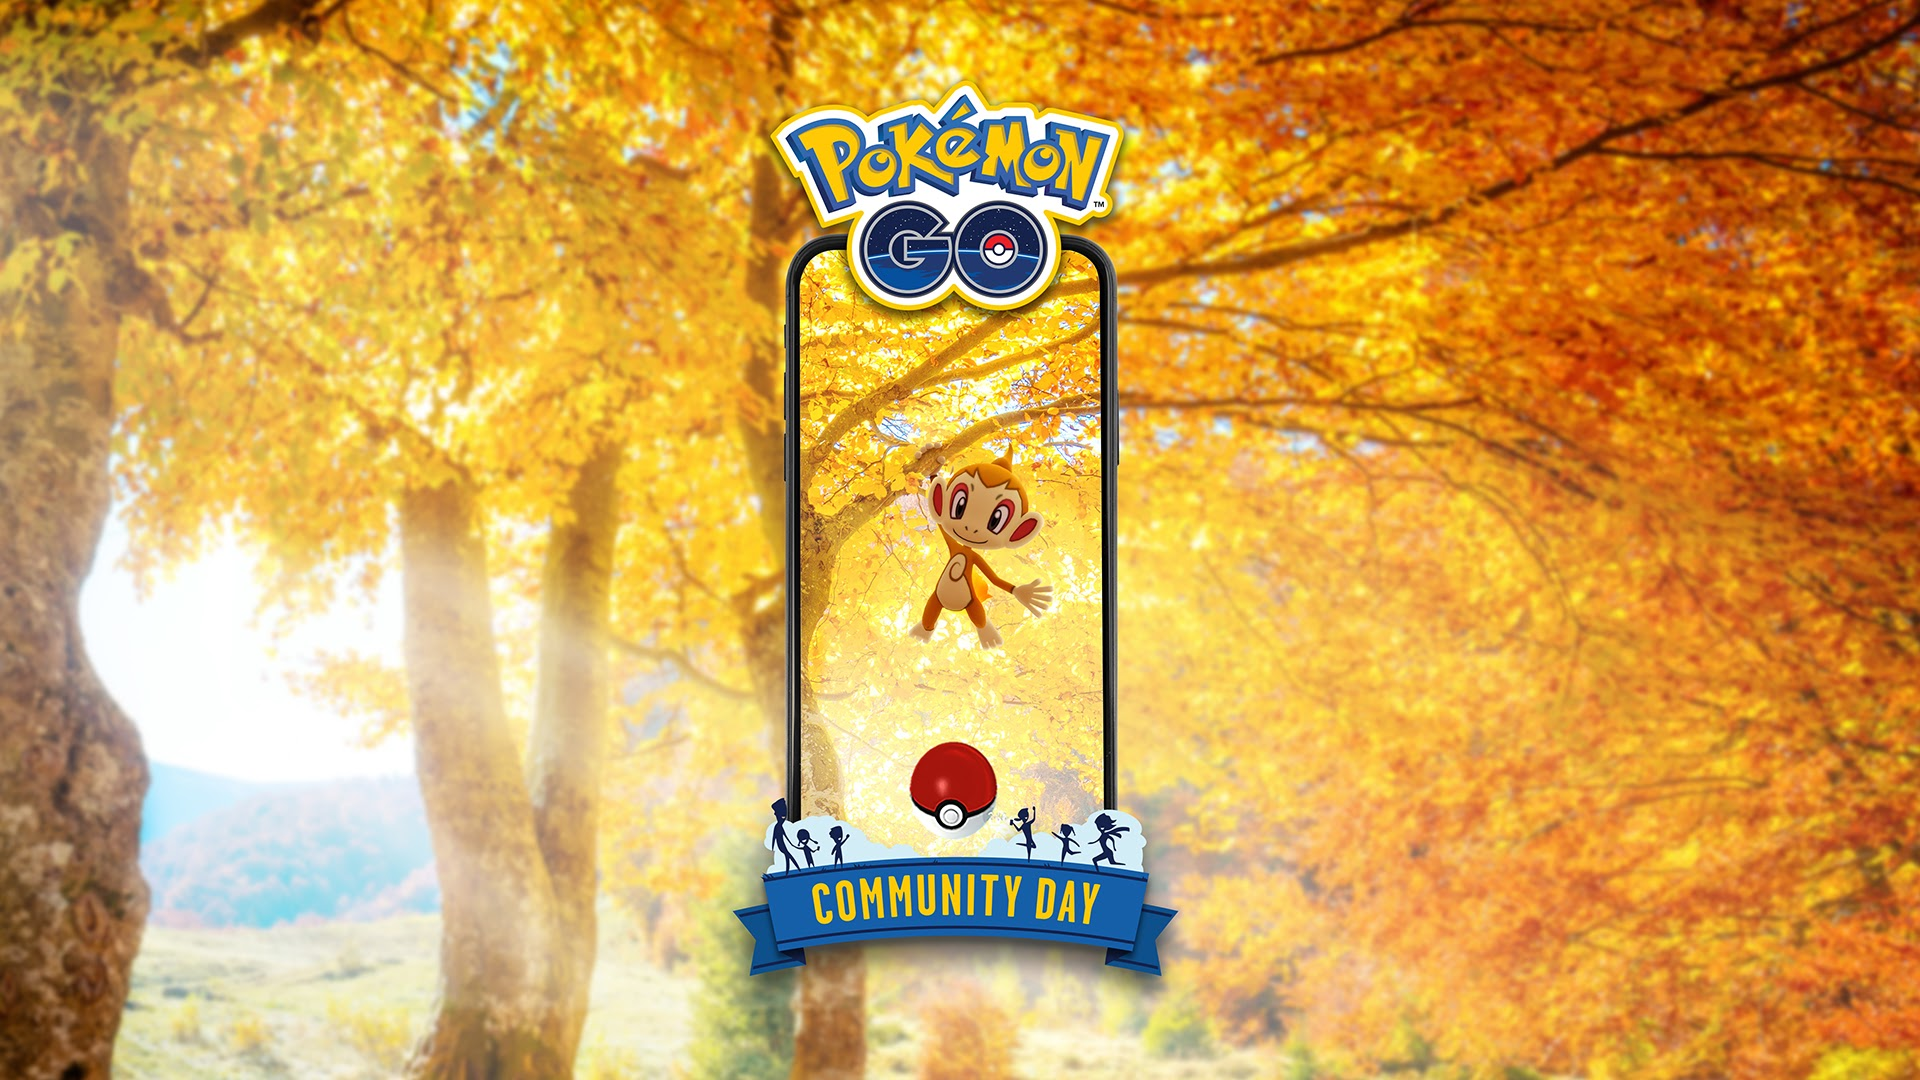 A Chimchar swings on the branch of a tree in an autumn-colored area